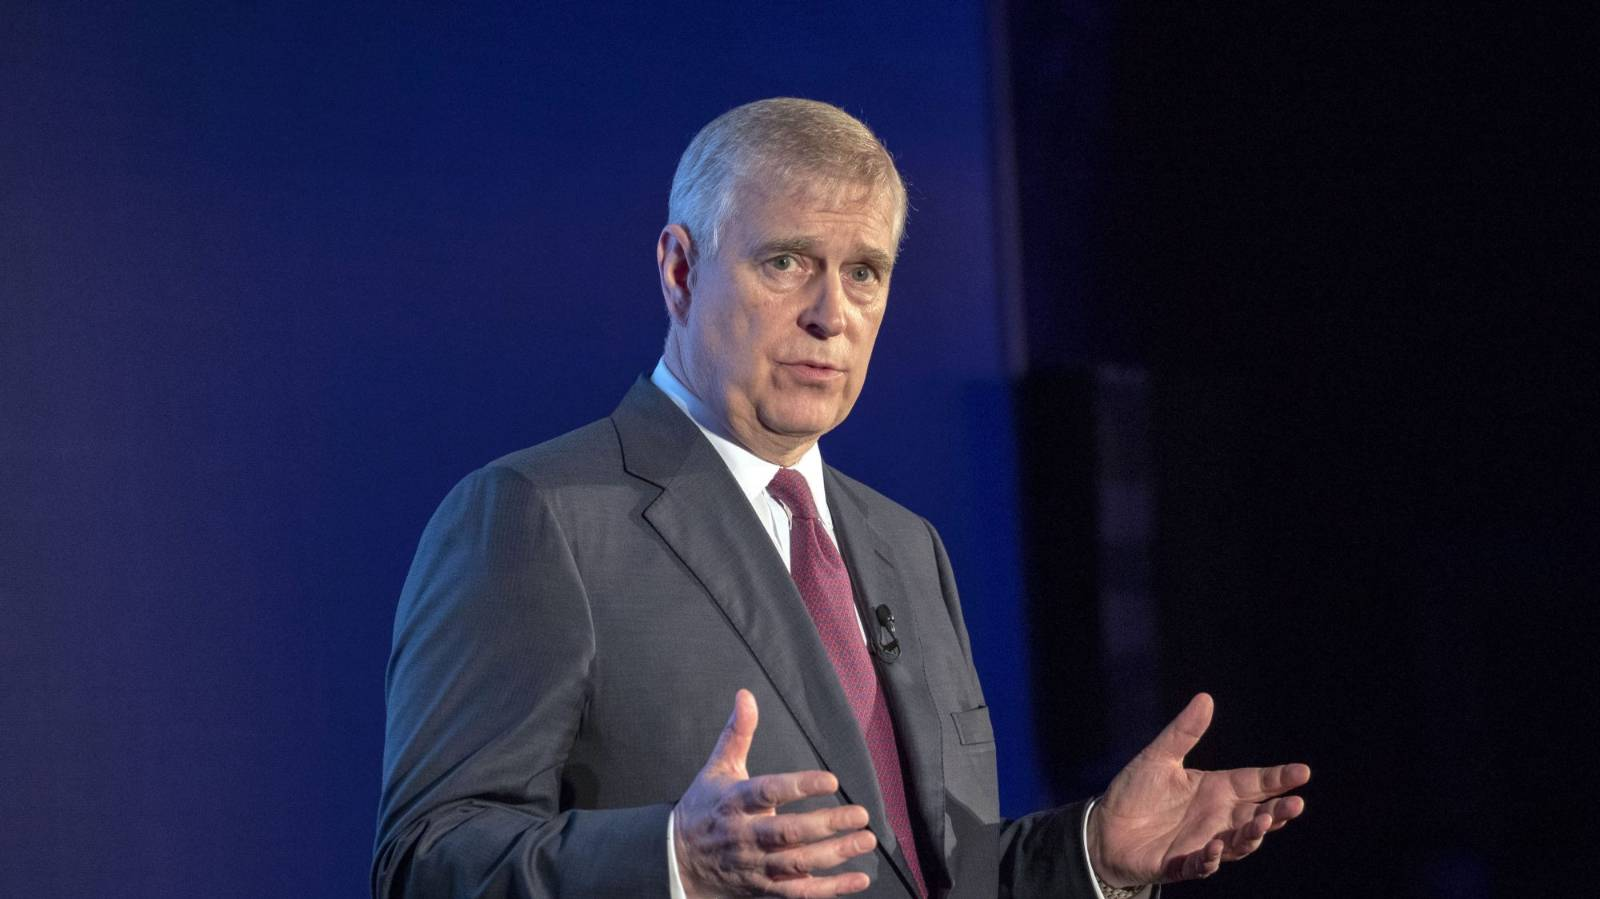 Prince Andrew's Royal life over